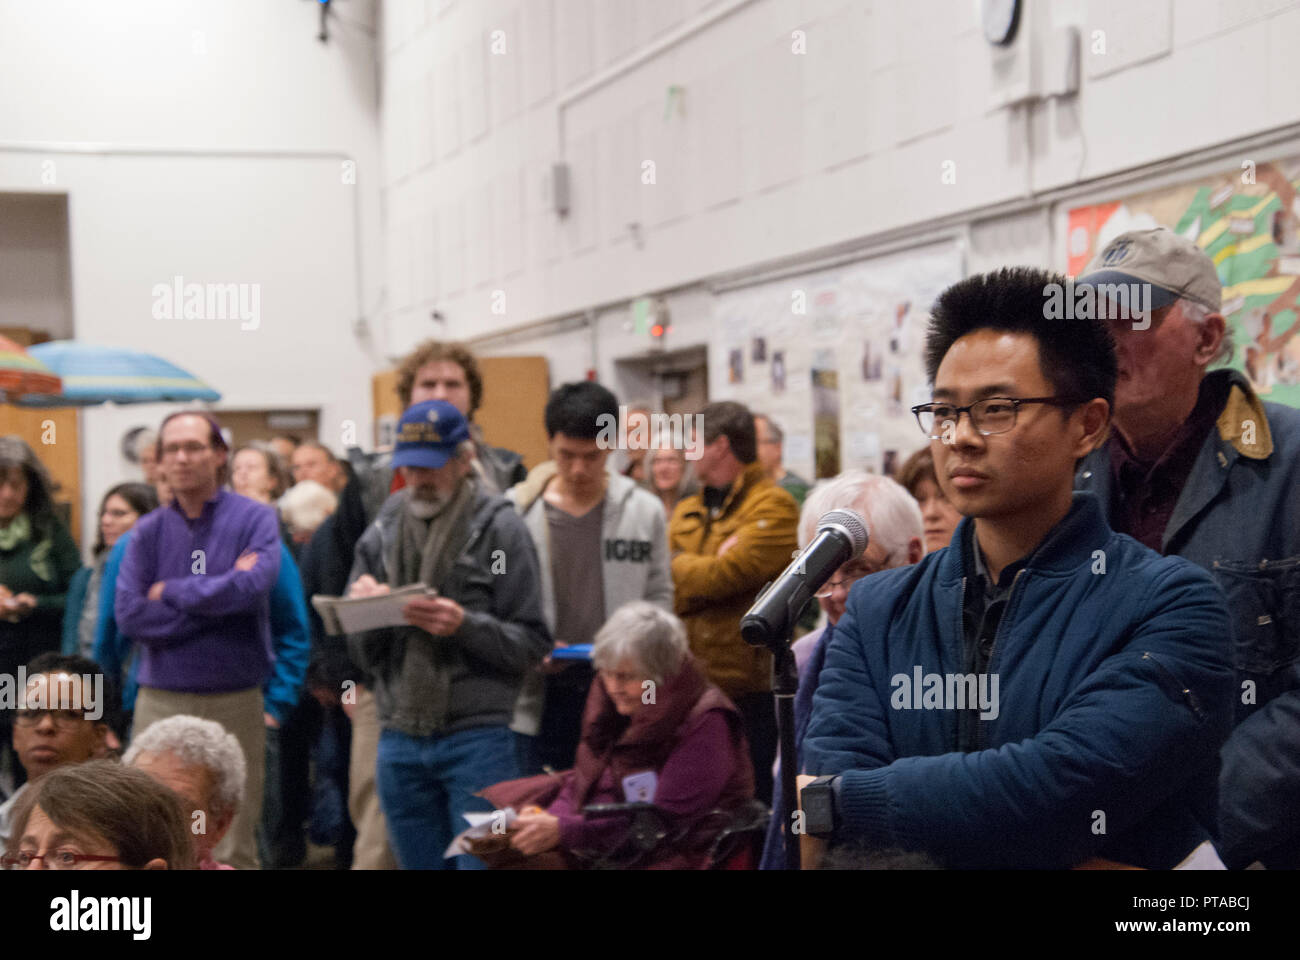 Residents line up to discuss building housing at the North Berkeley BART station at a public meeting at the Berkeley Adult School on March 15, 2018. - Stock Image